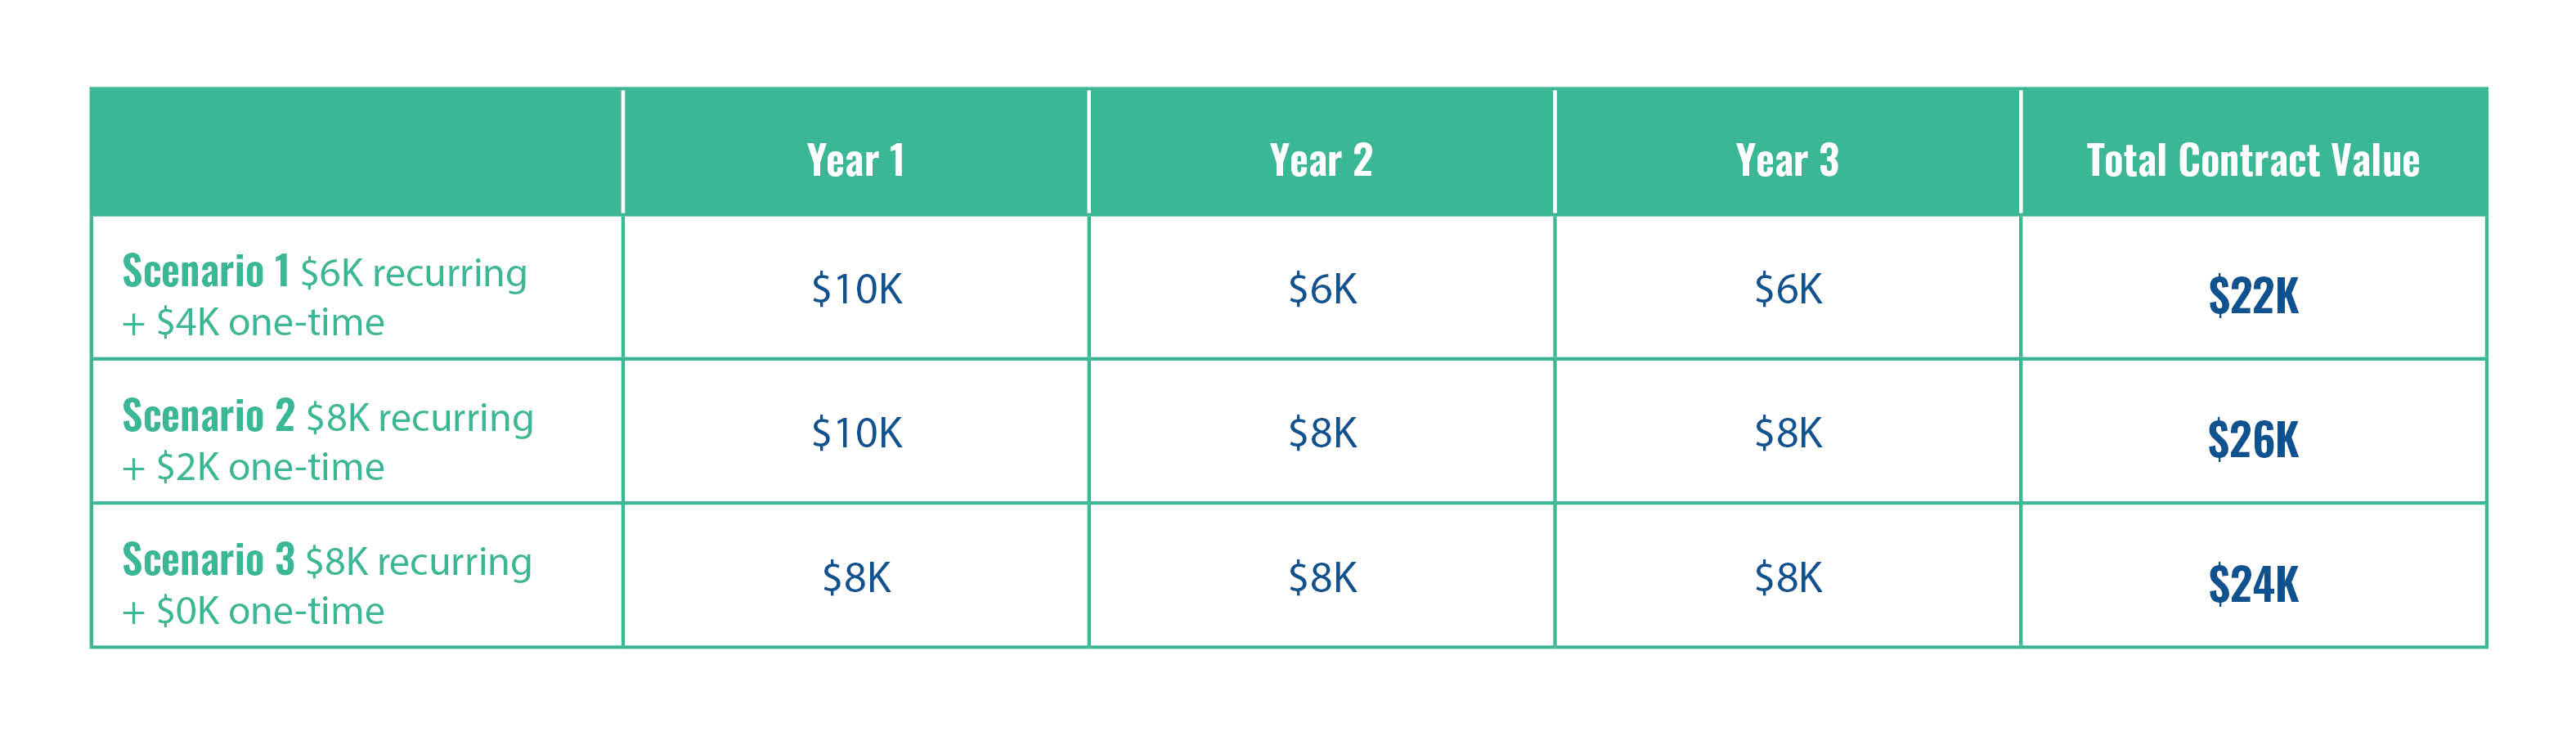 3 Strategies That Can Help Grow Recurring Revenue Through Pricing